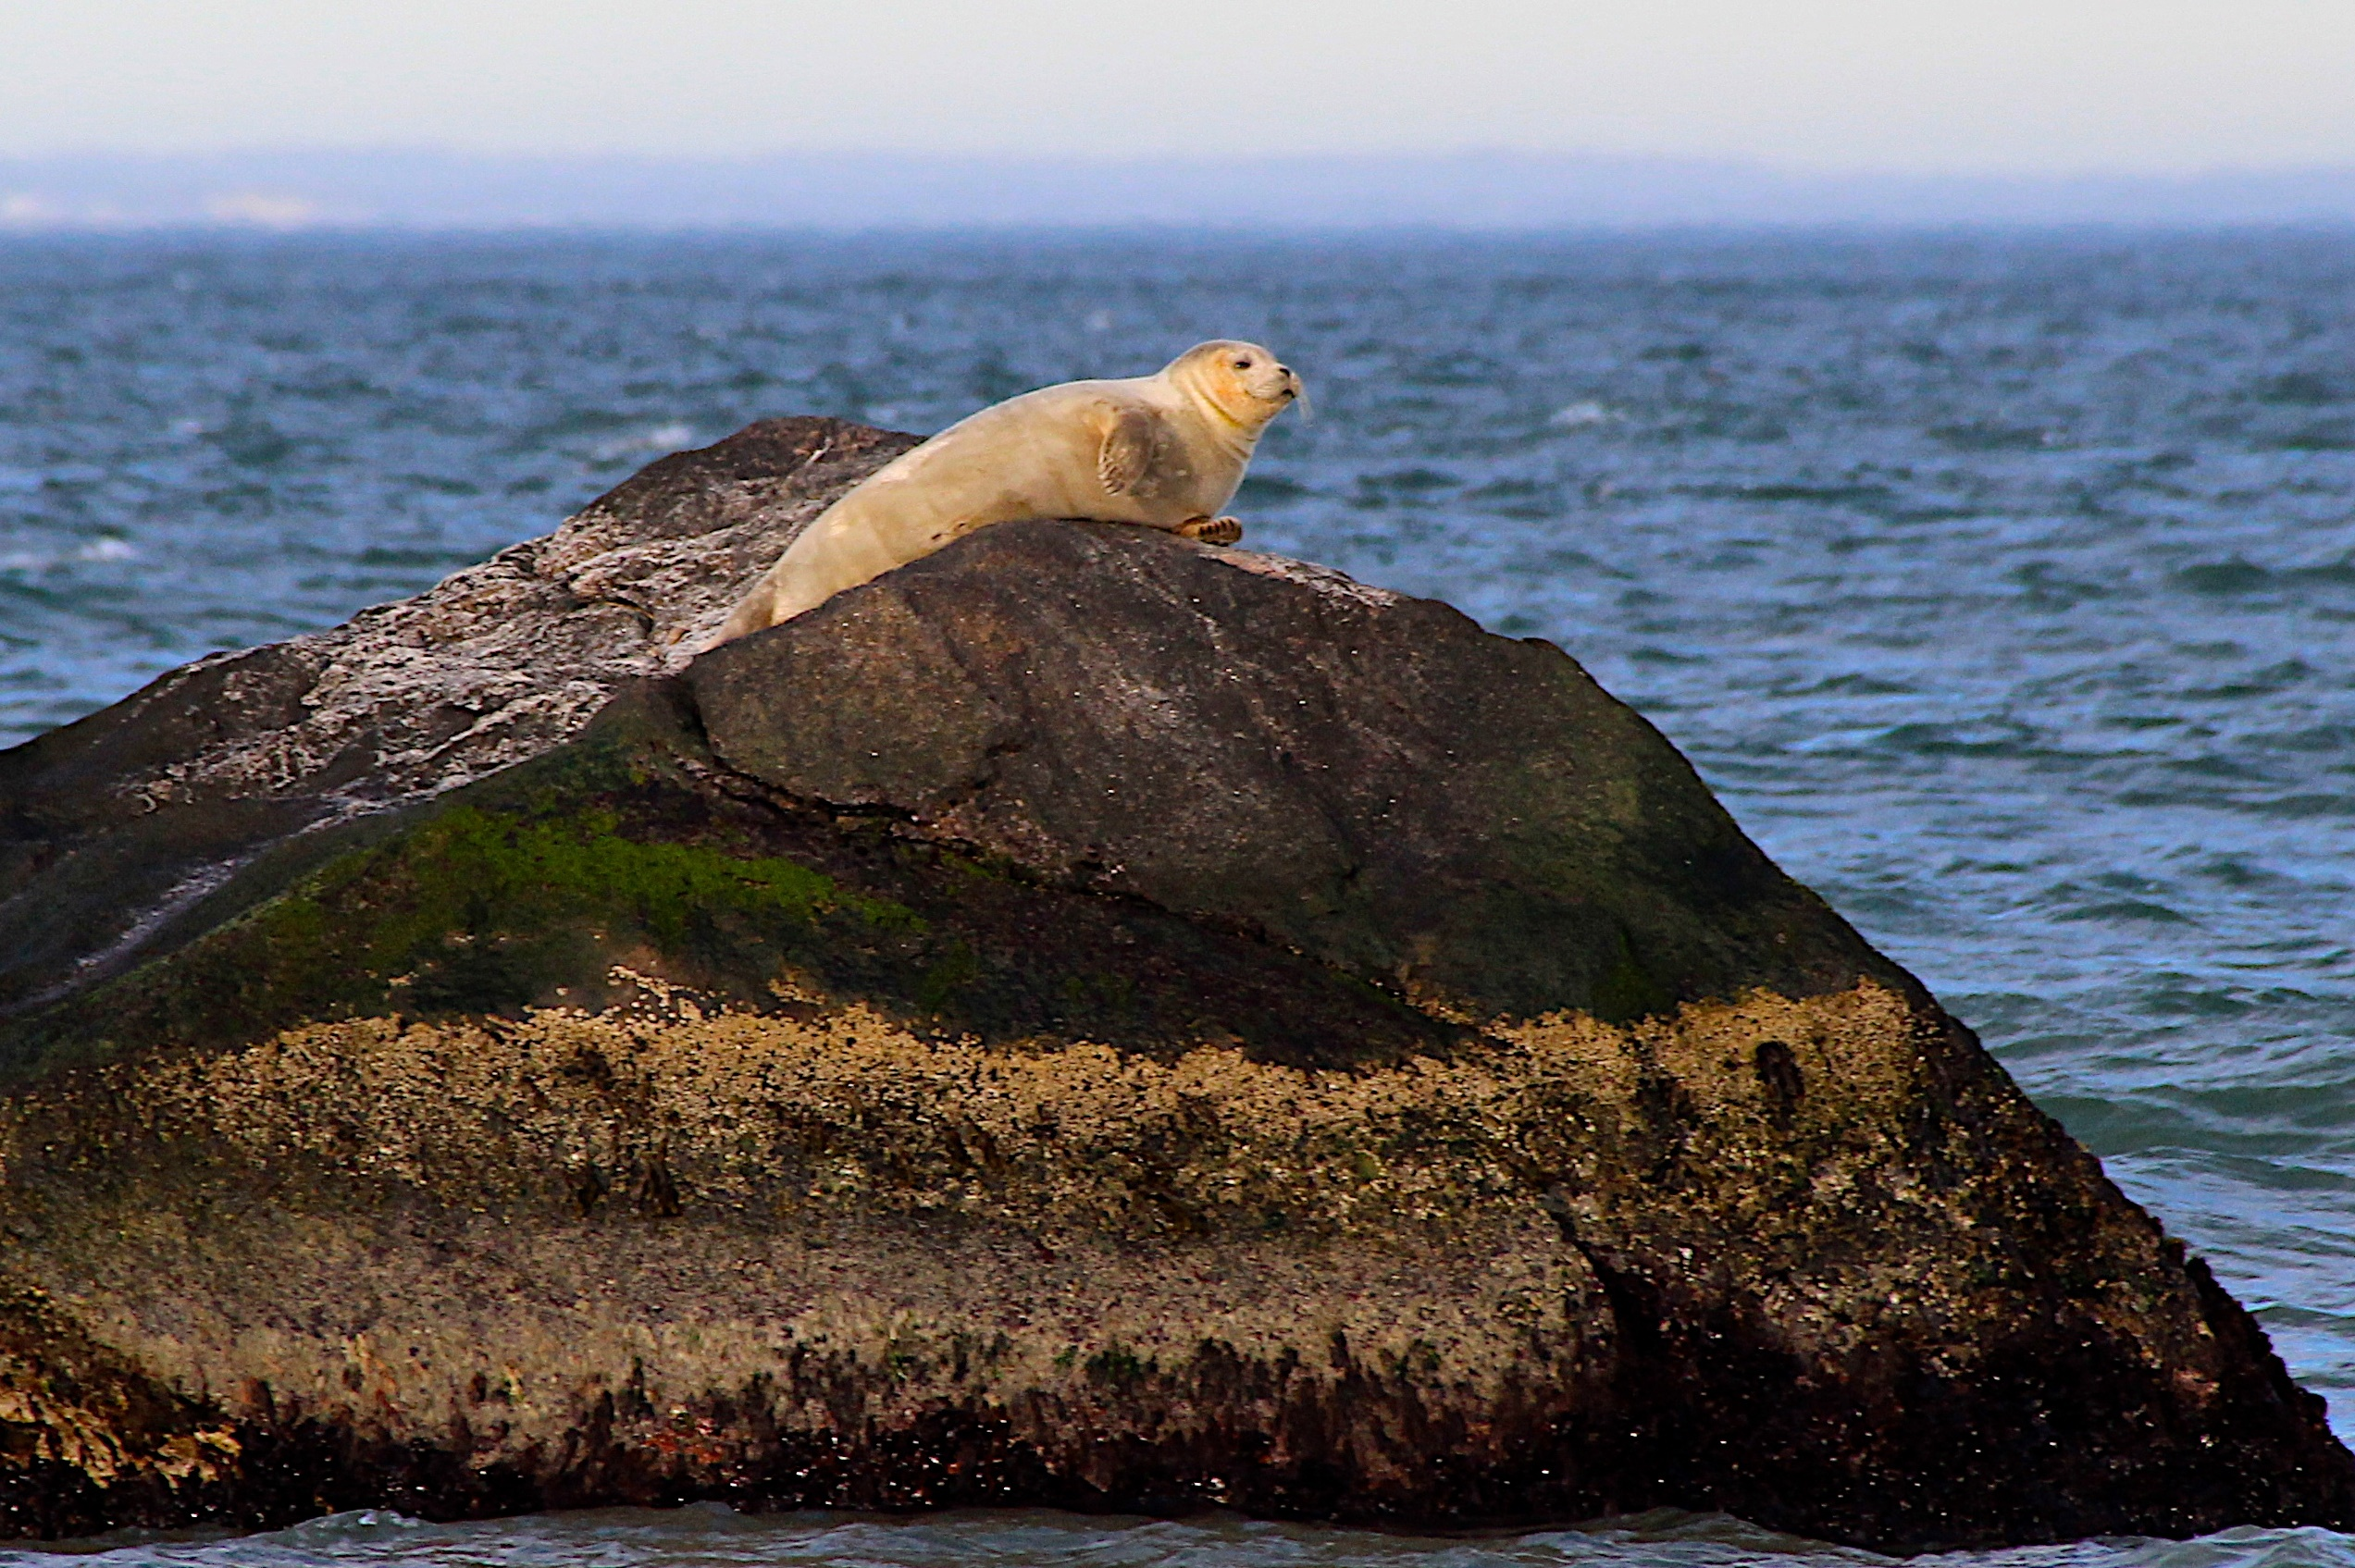 It's the time of year for seal sightings and those who ventured to Montauk Point on Saturday were not disappointed. KYRIL BROMLEY